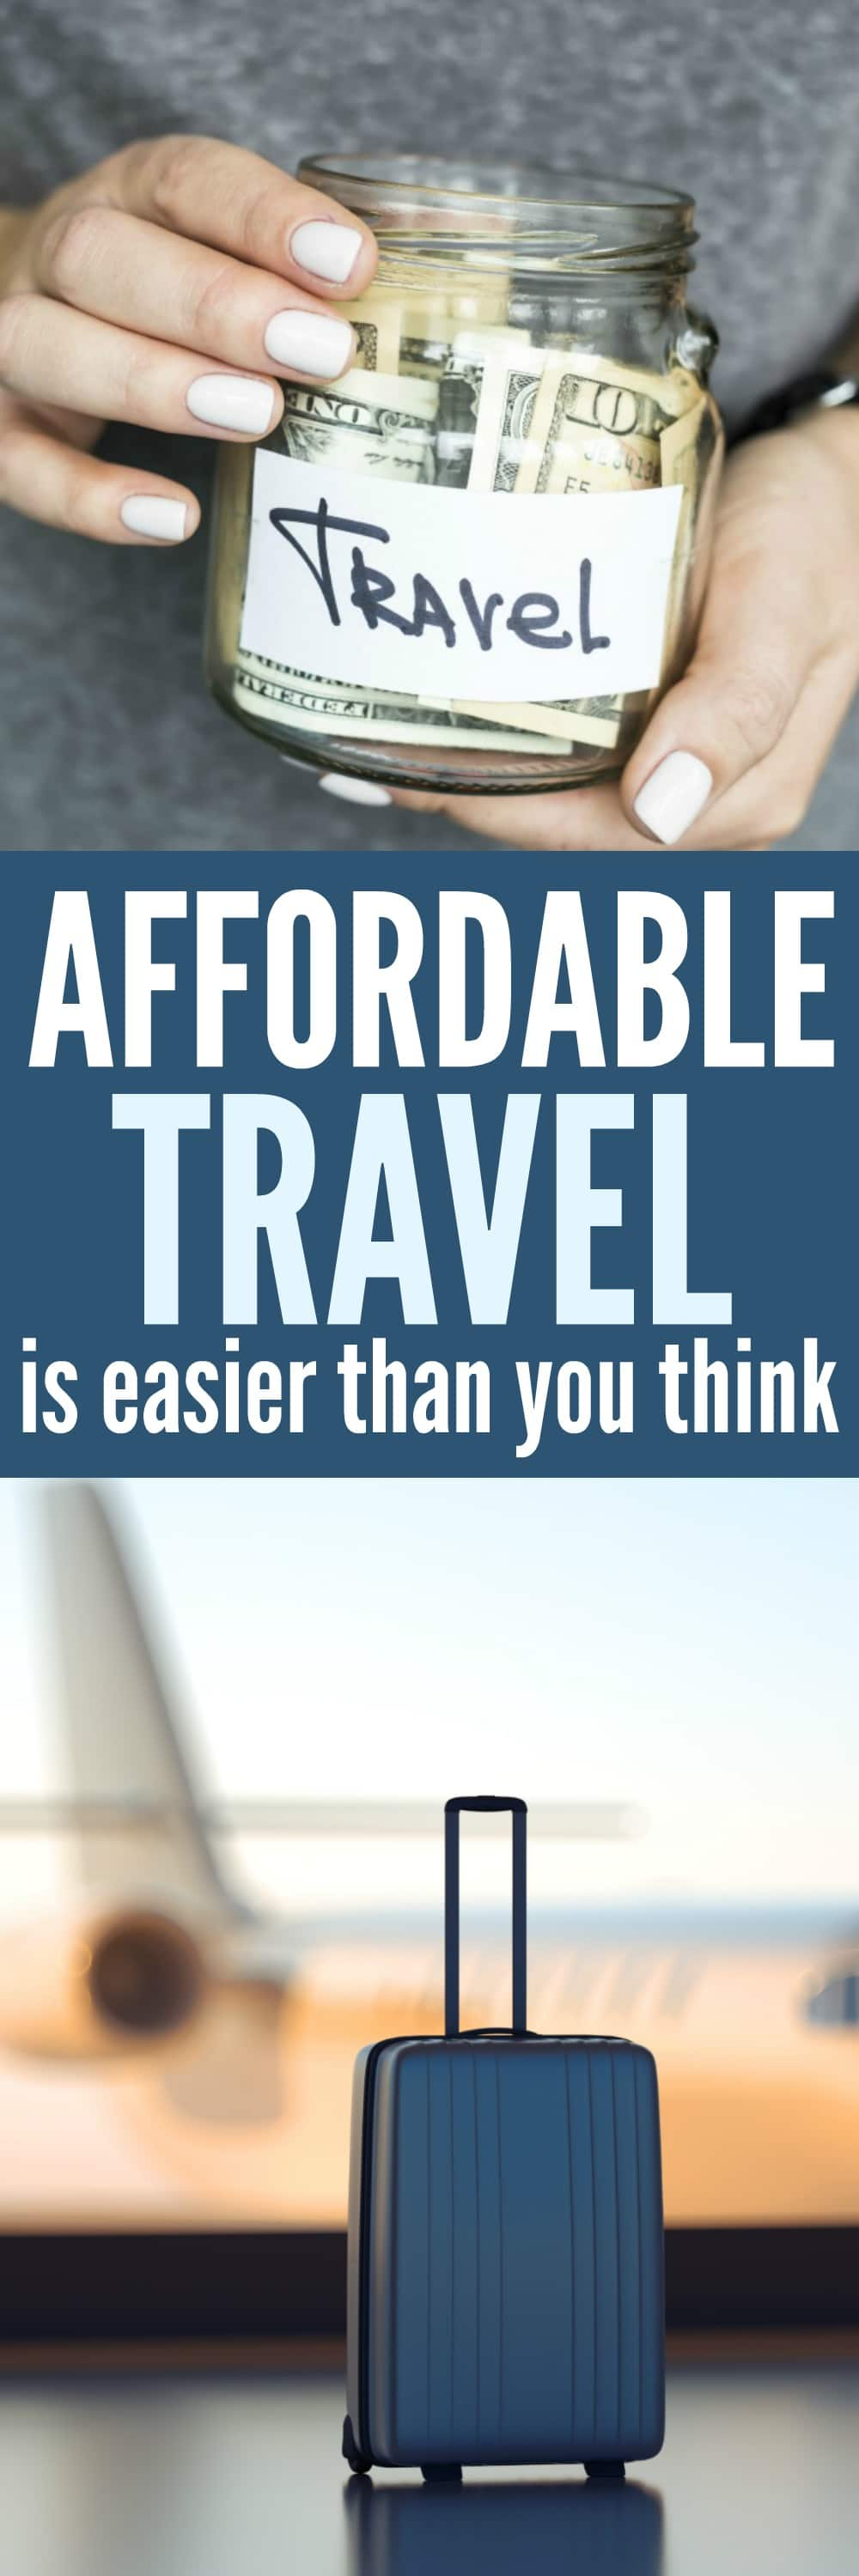 Affordable Travel is easier than you think